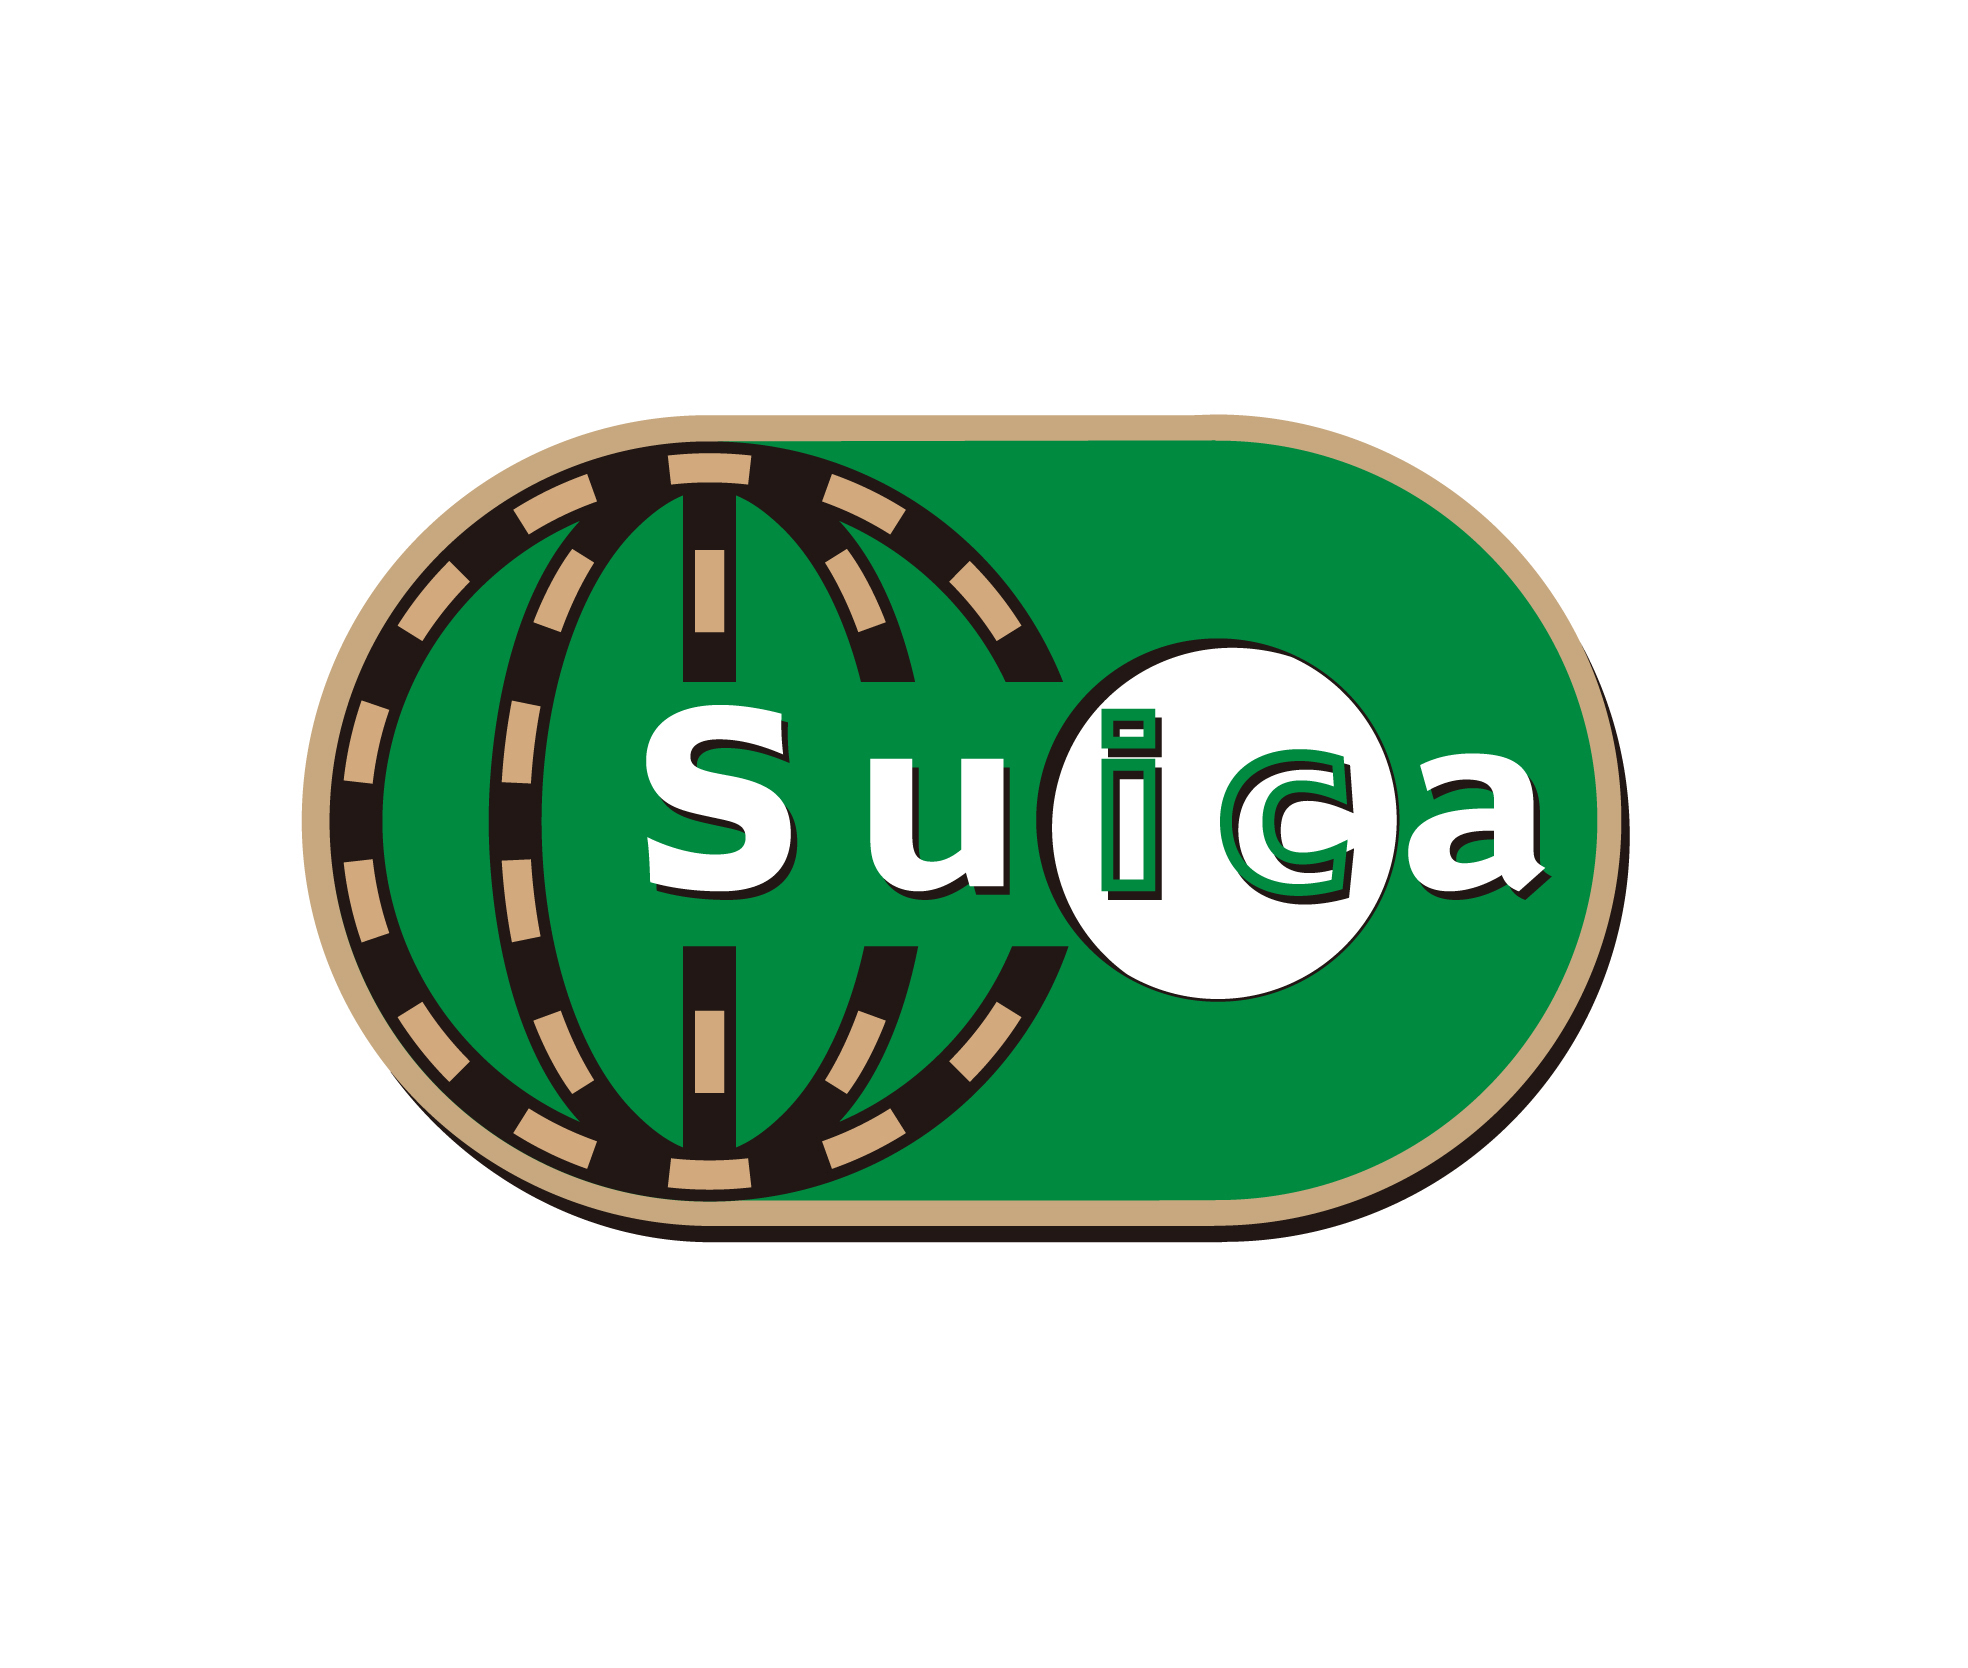 Suica | Logo Mark